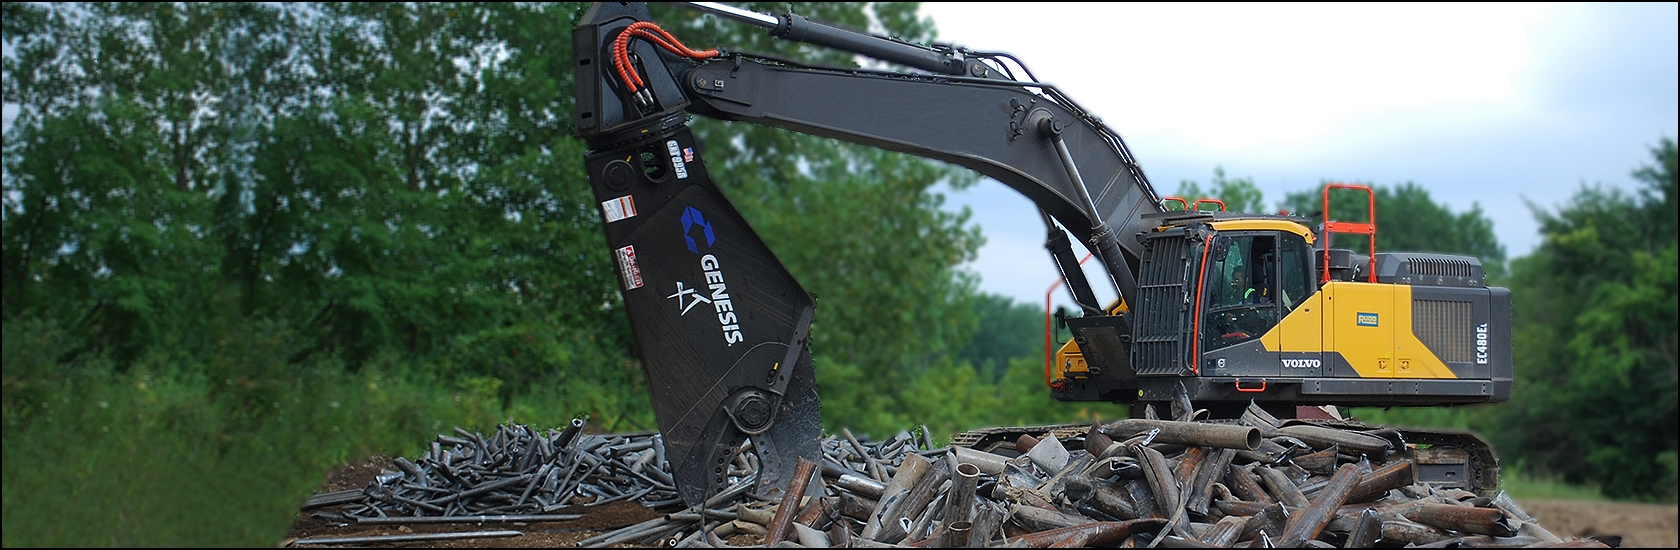 Genesis GXT Mobile Shear processing scrap.